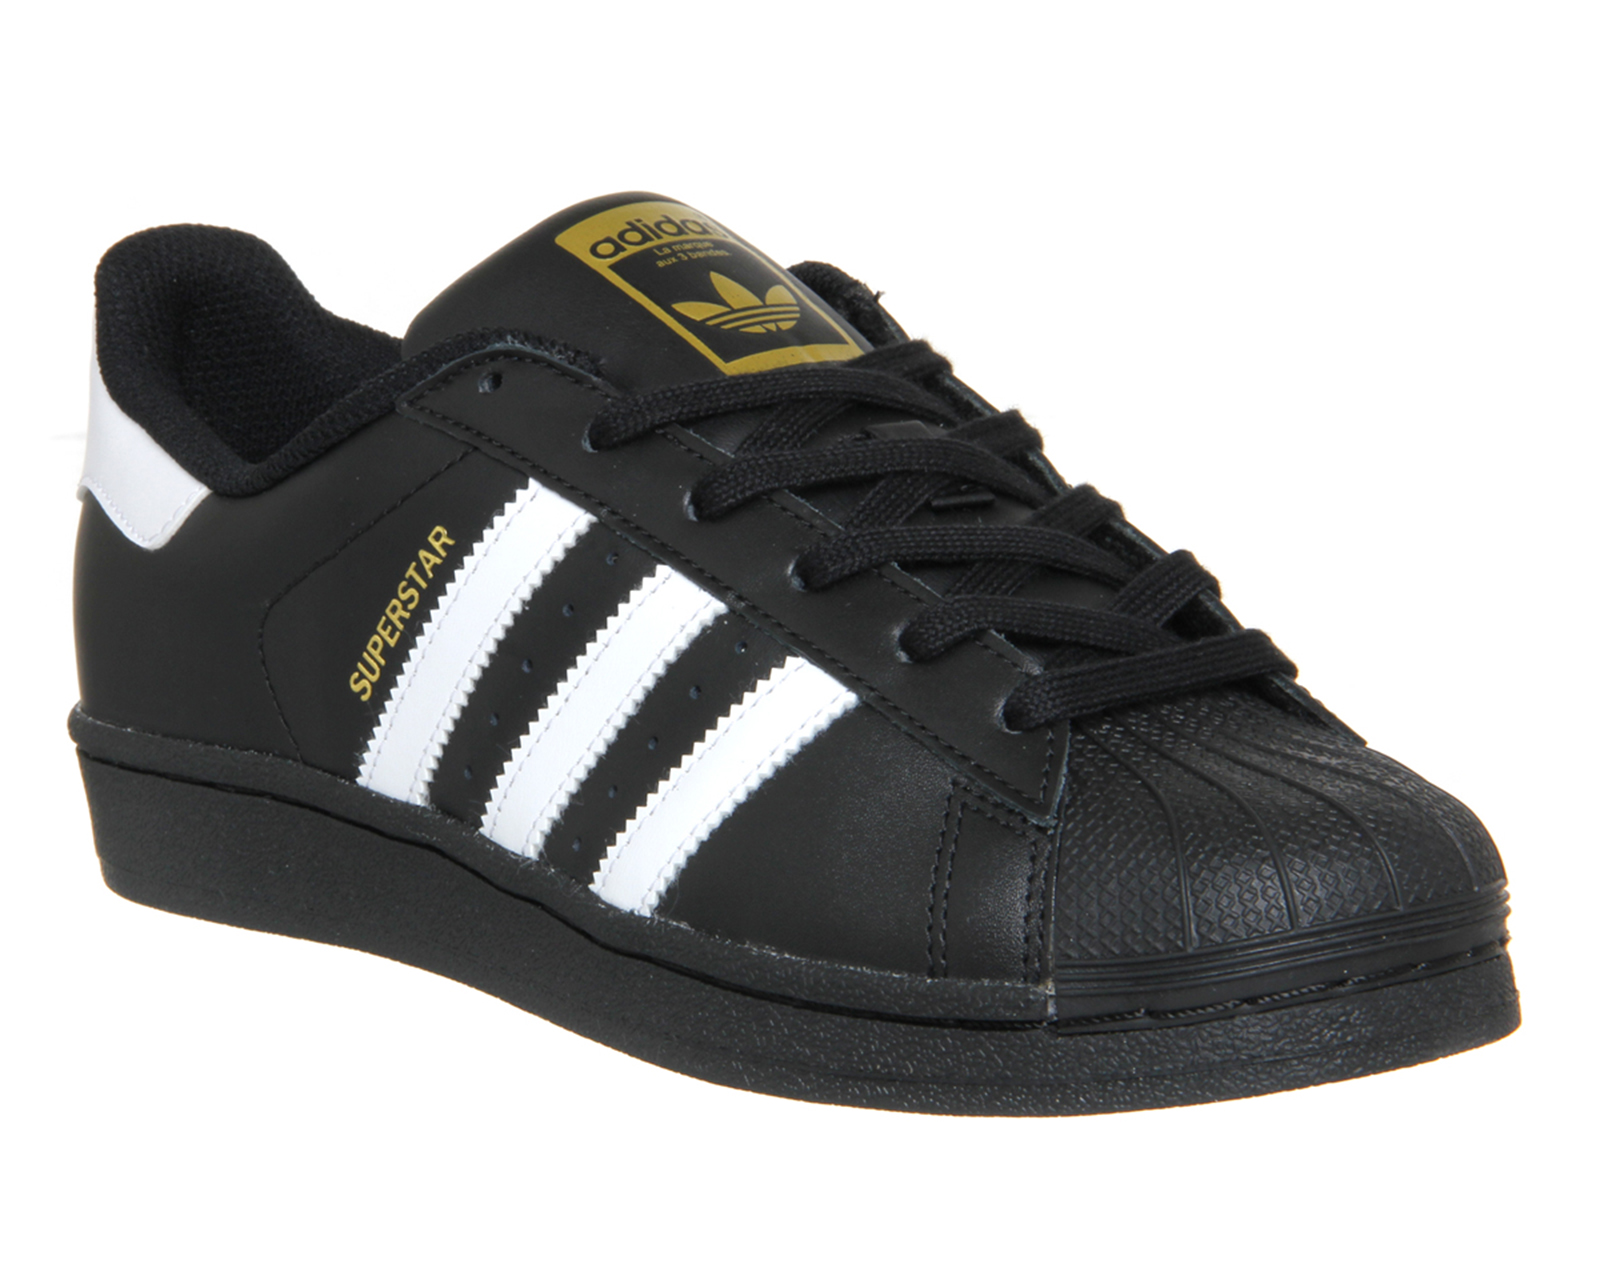 outlet store f9cc2 cab76 Buy adidas superstar youth black - 52% OFF